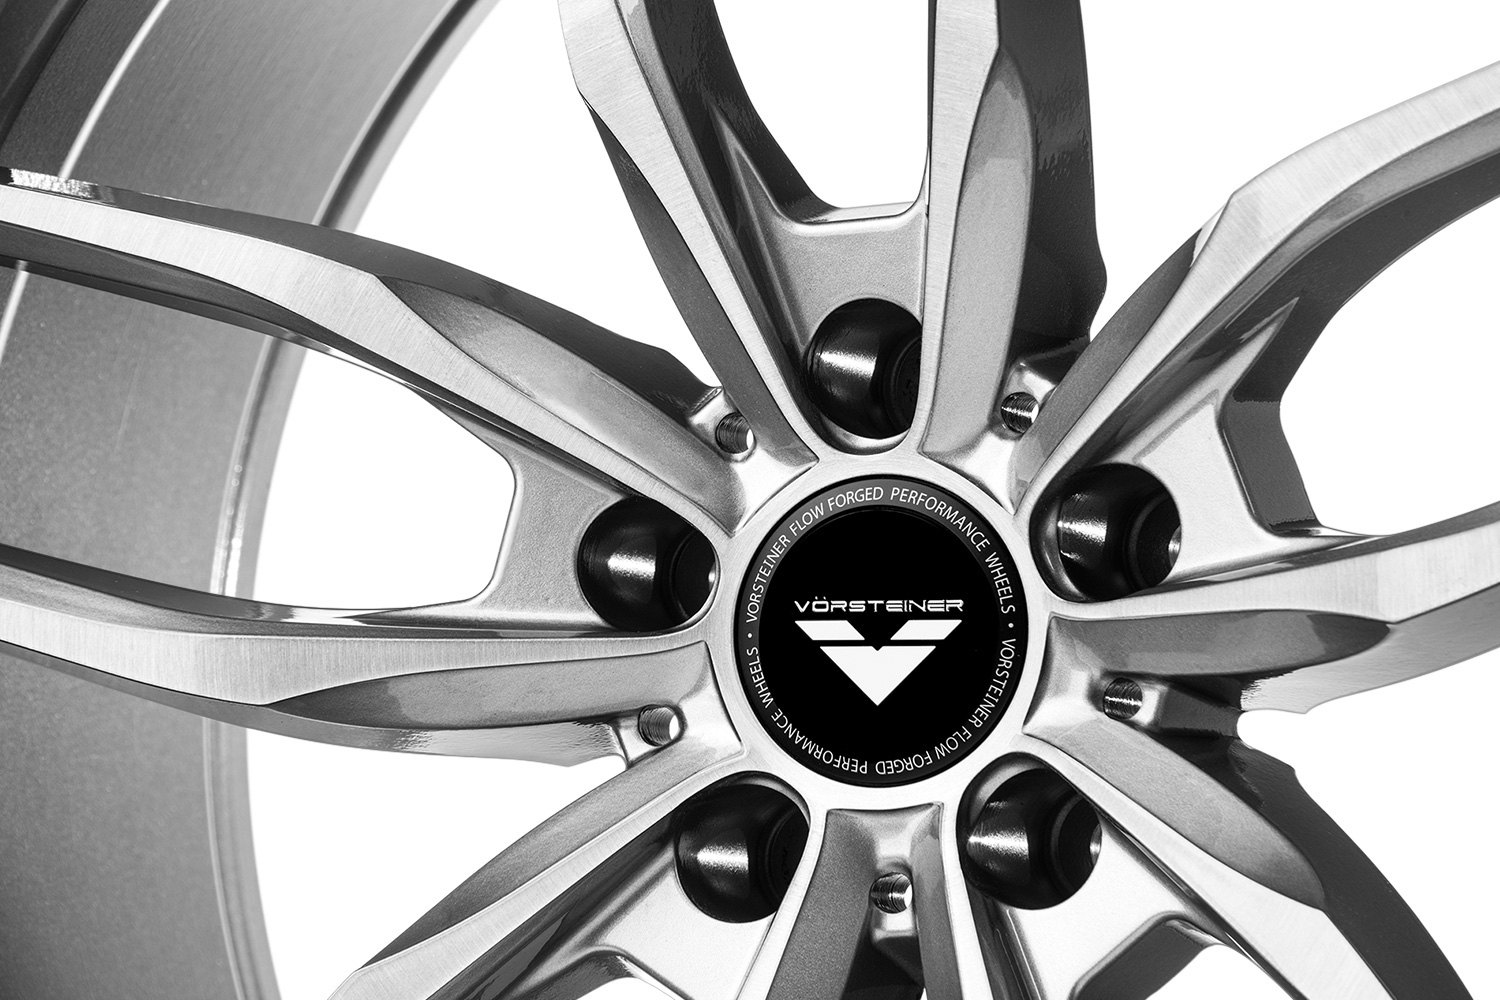 VORSTEINER? VFE 401 Wheels - Custom Painted Rims